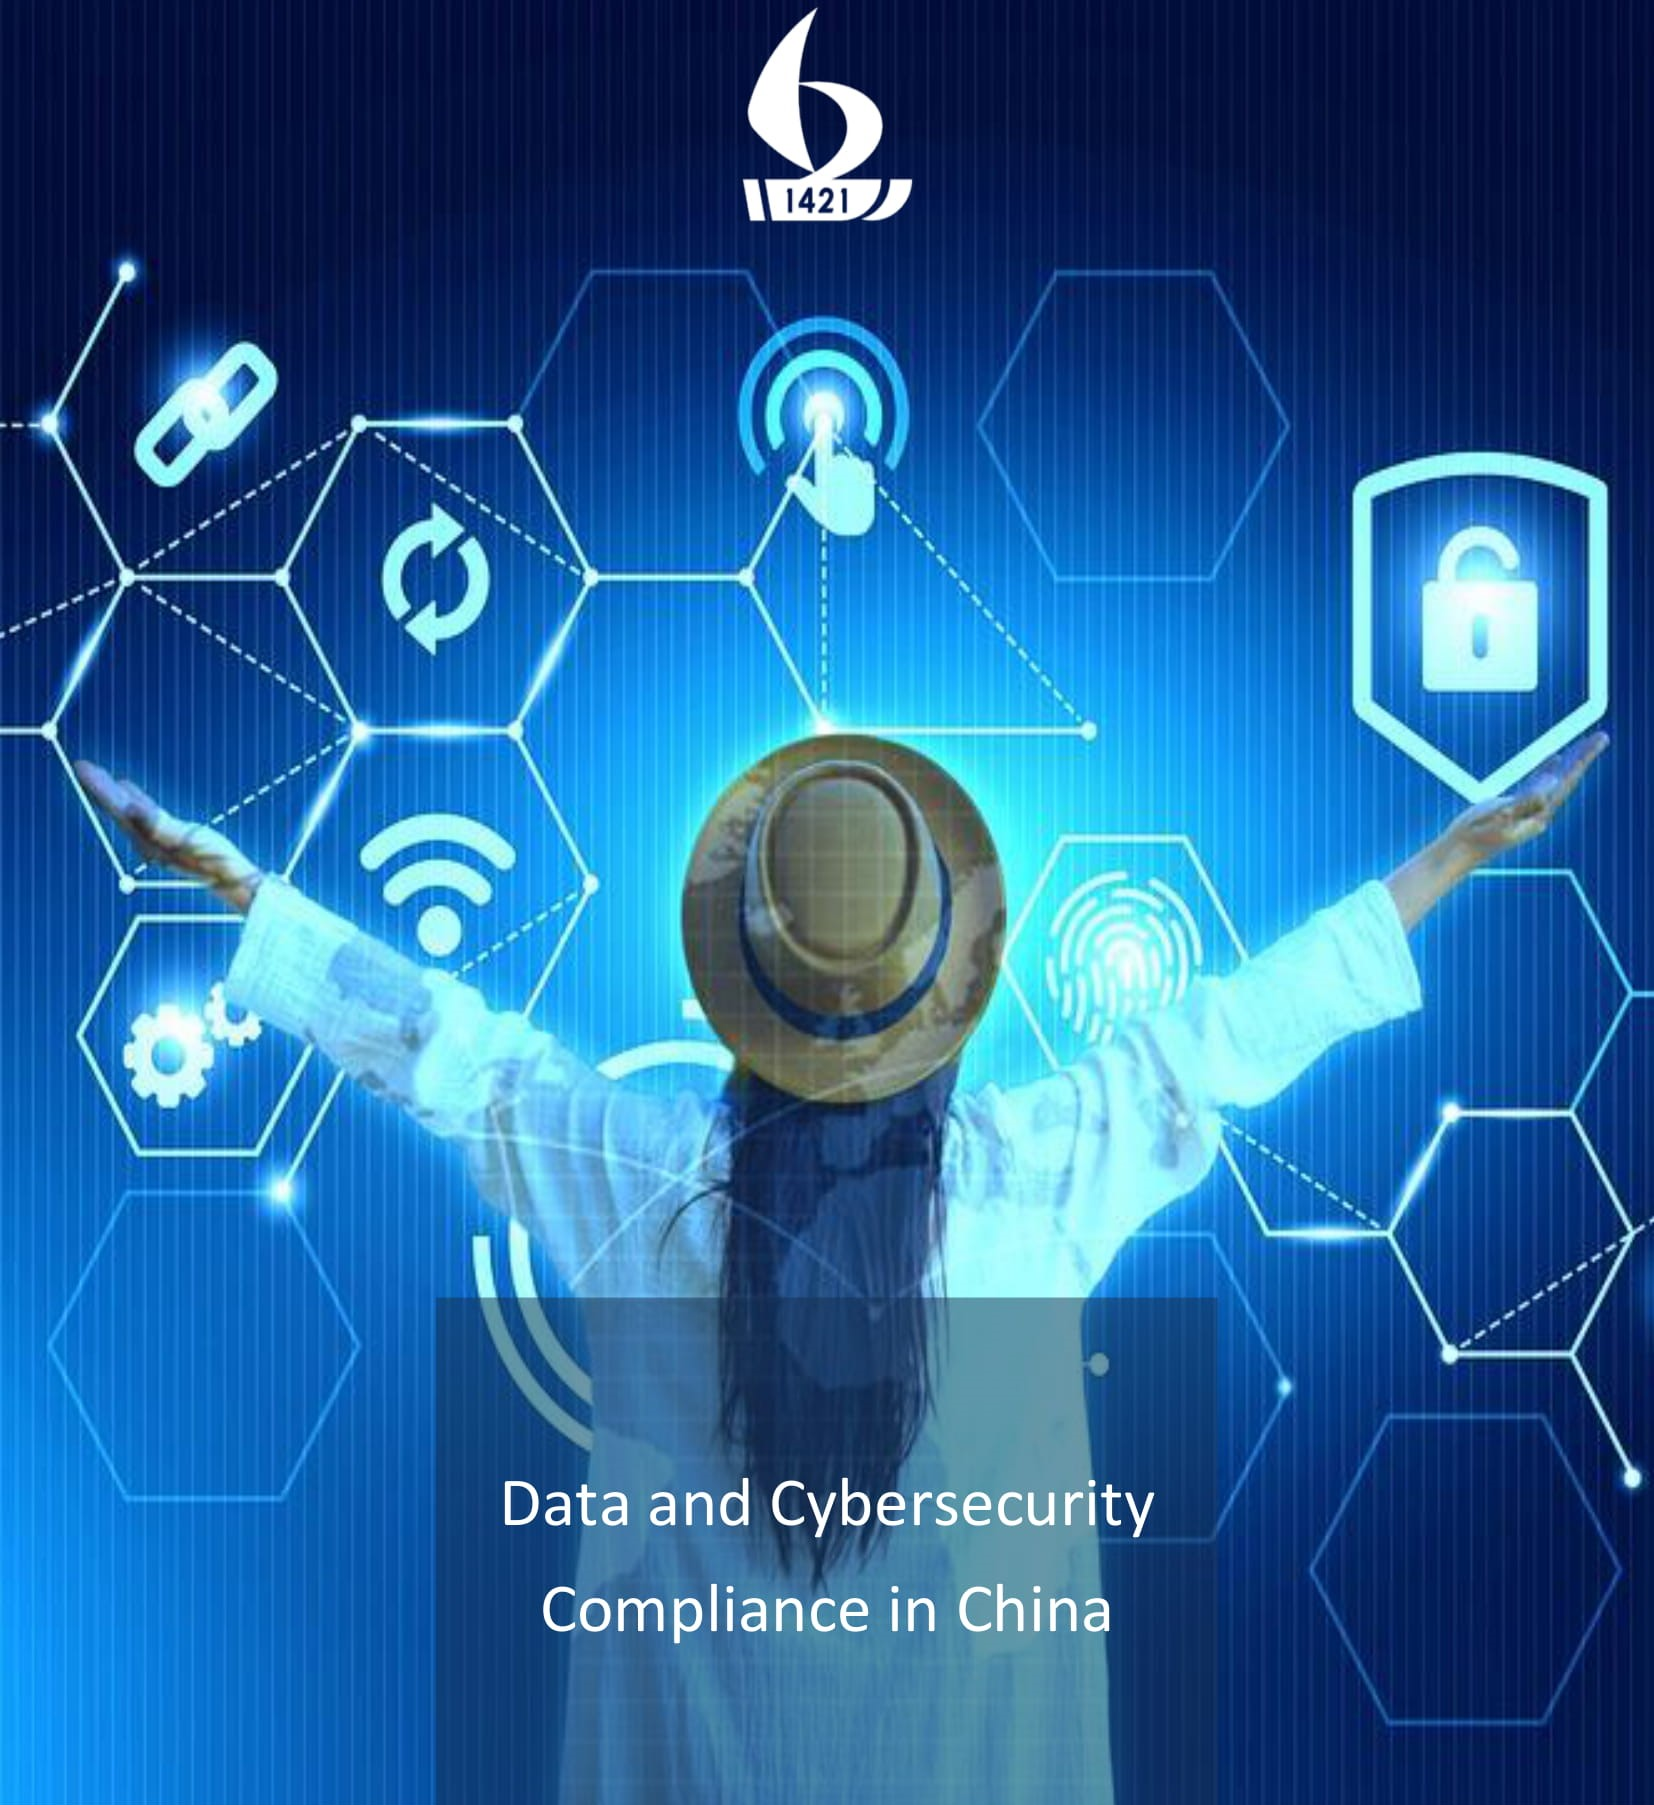 Data & Cybersecurity in China